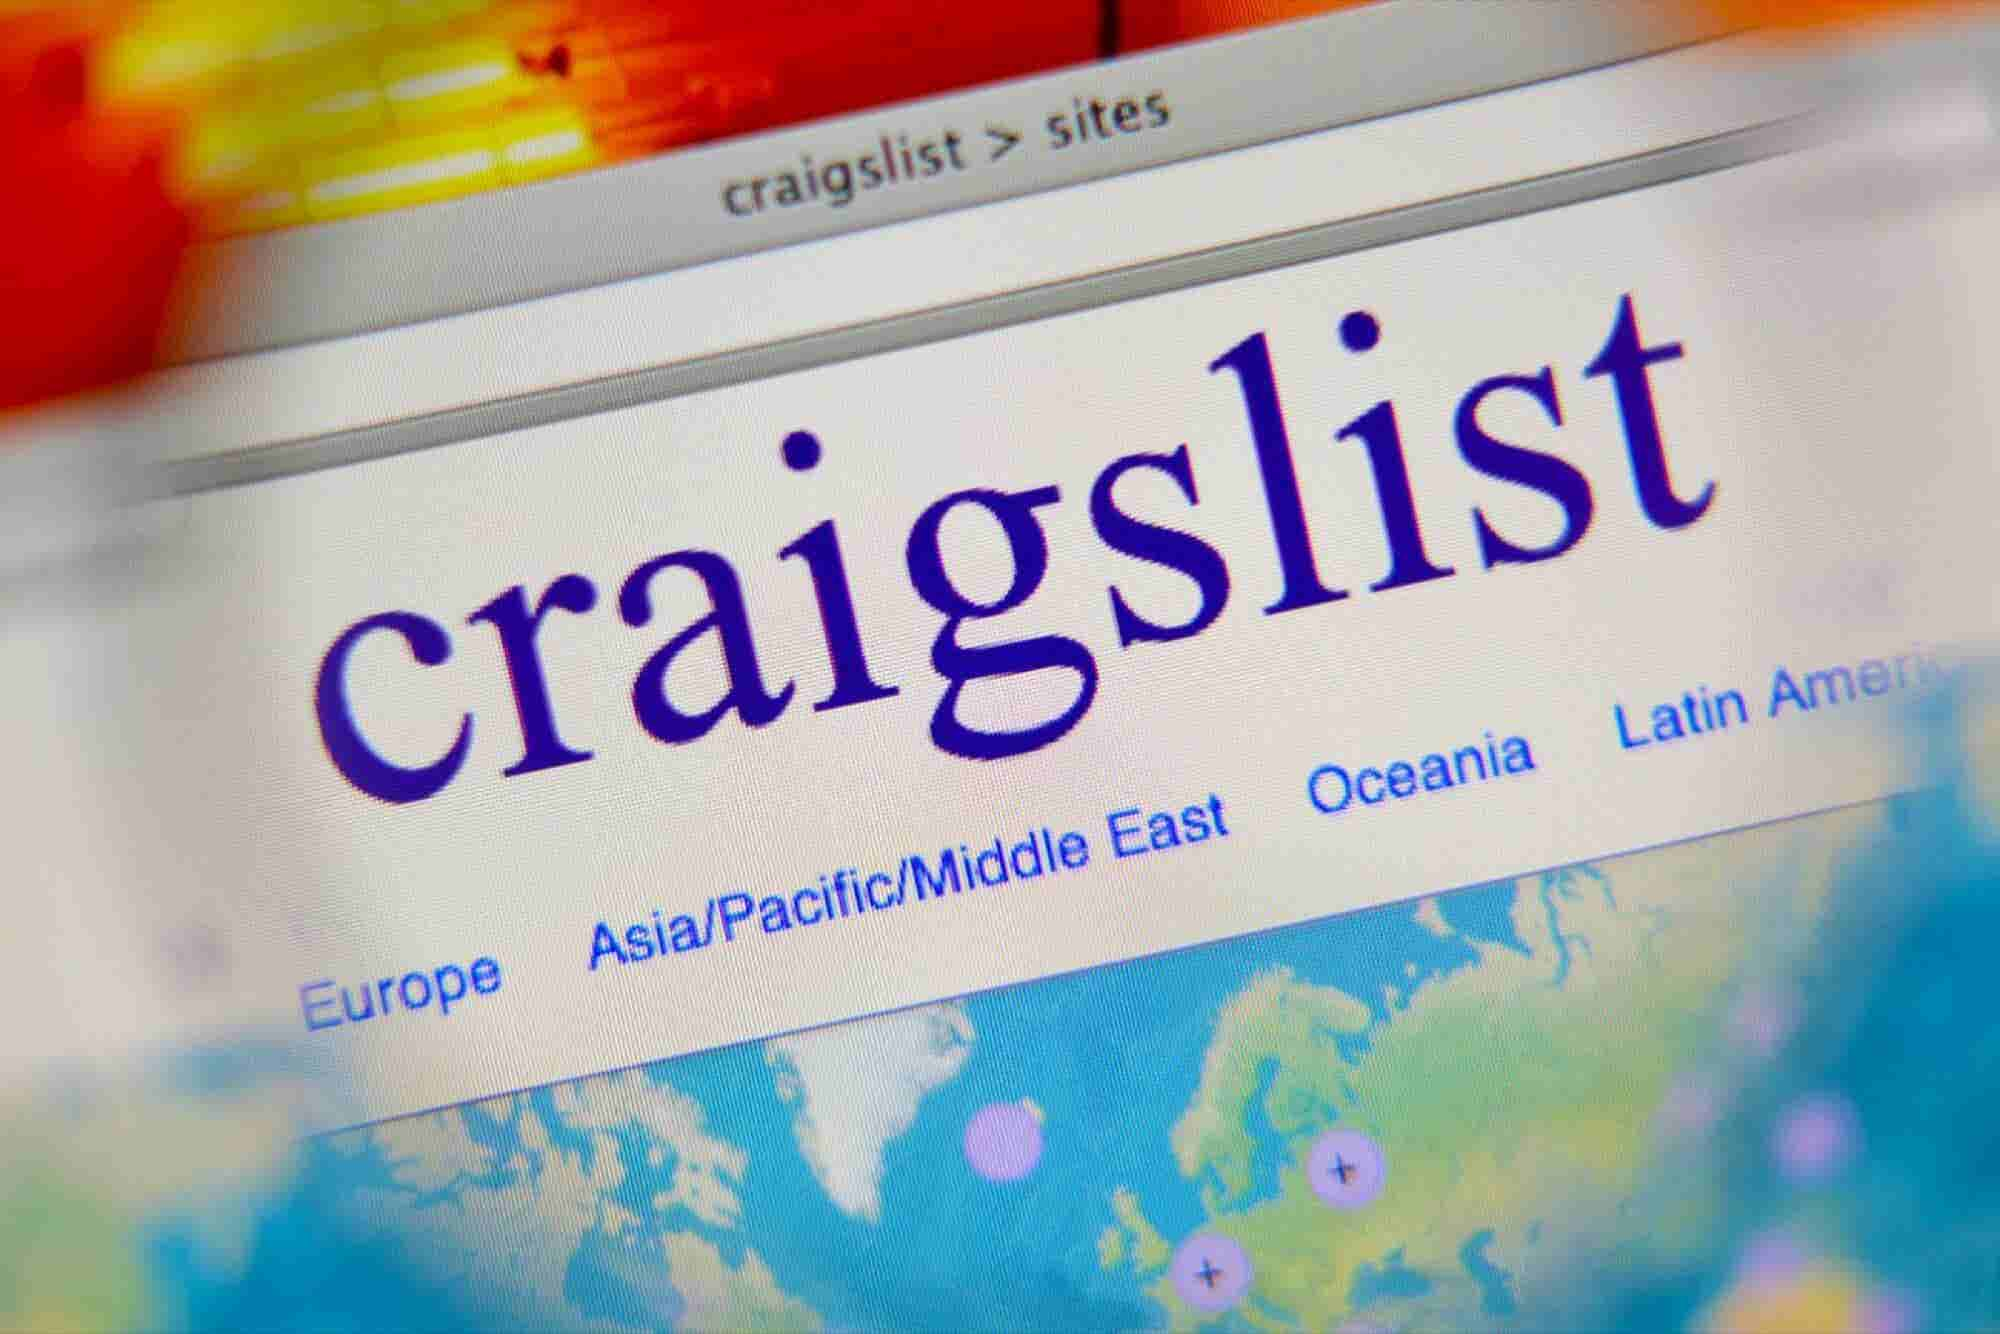 Craiglist Blocks Personal Ads to Protest Anti Sex-Trafficking Law